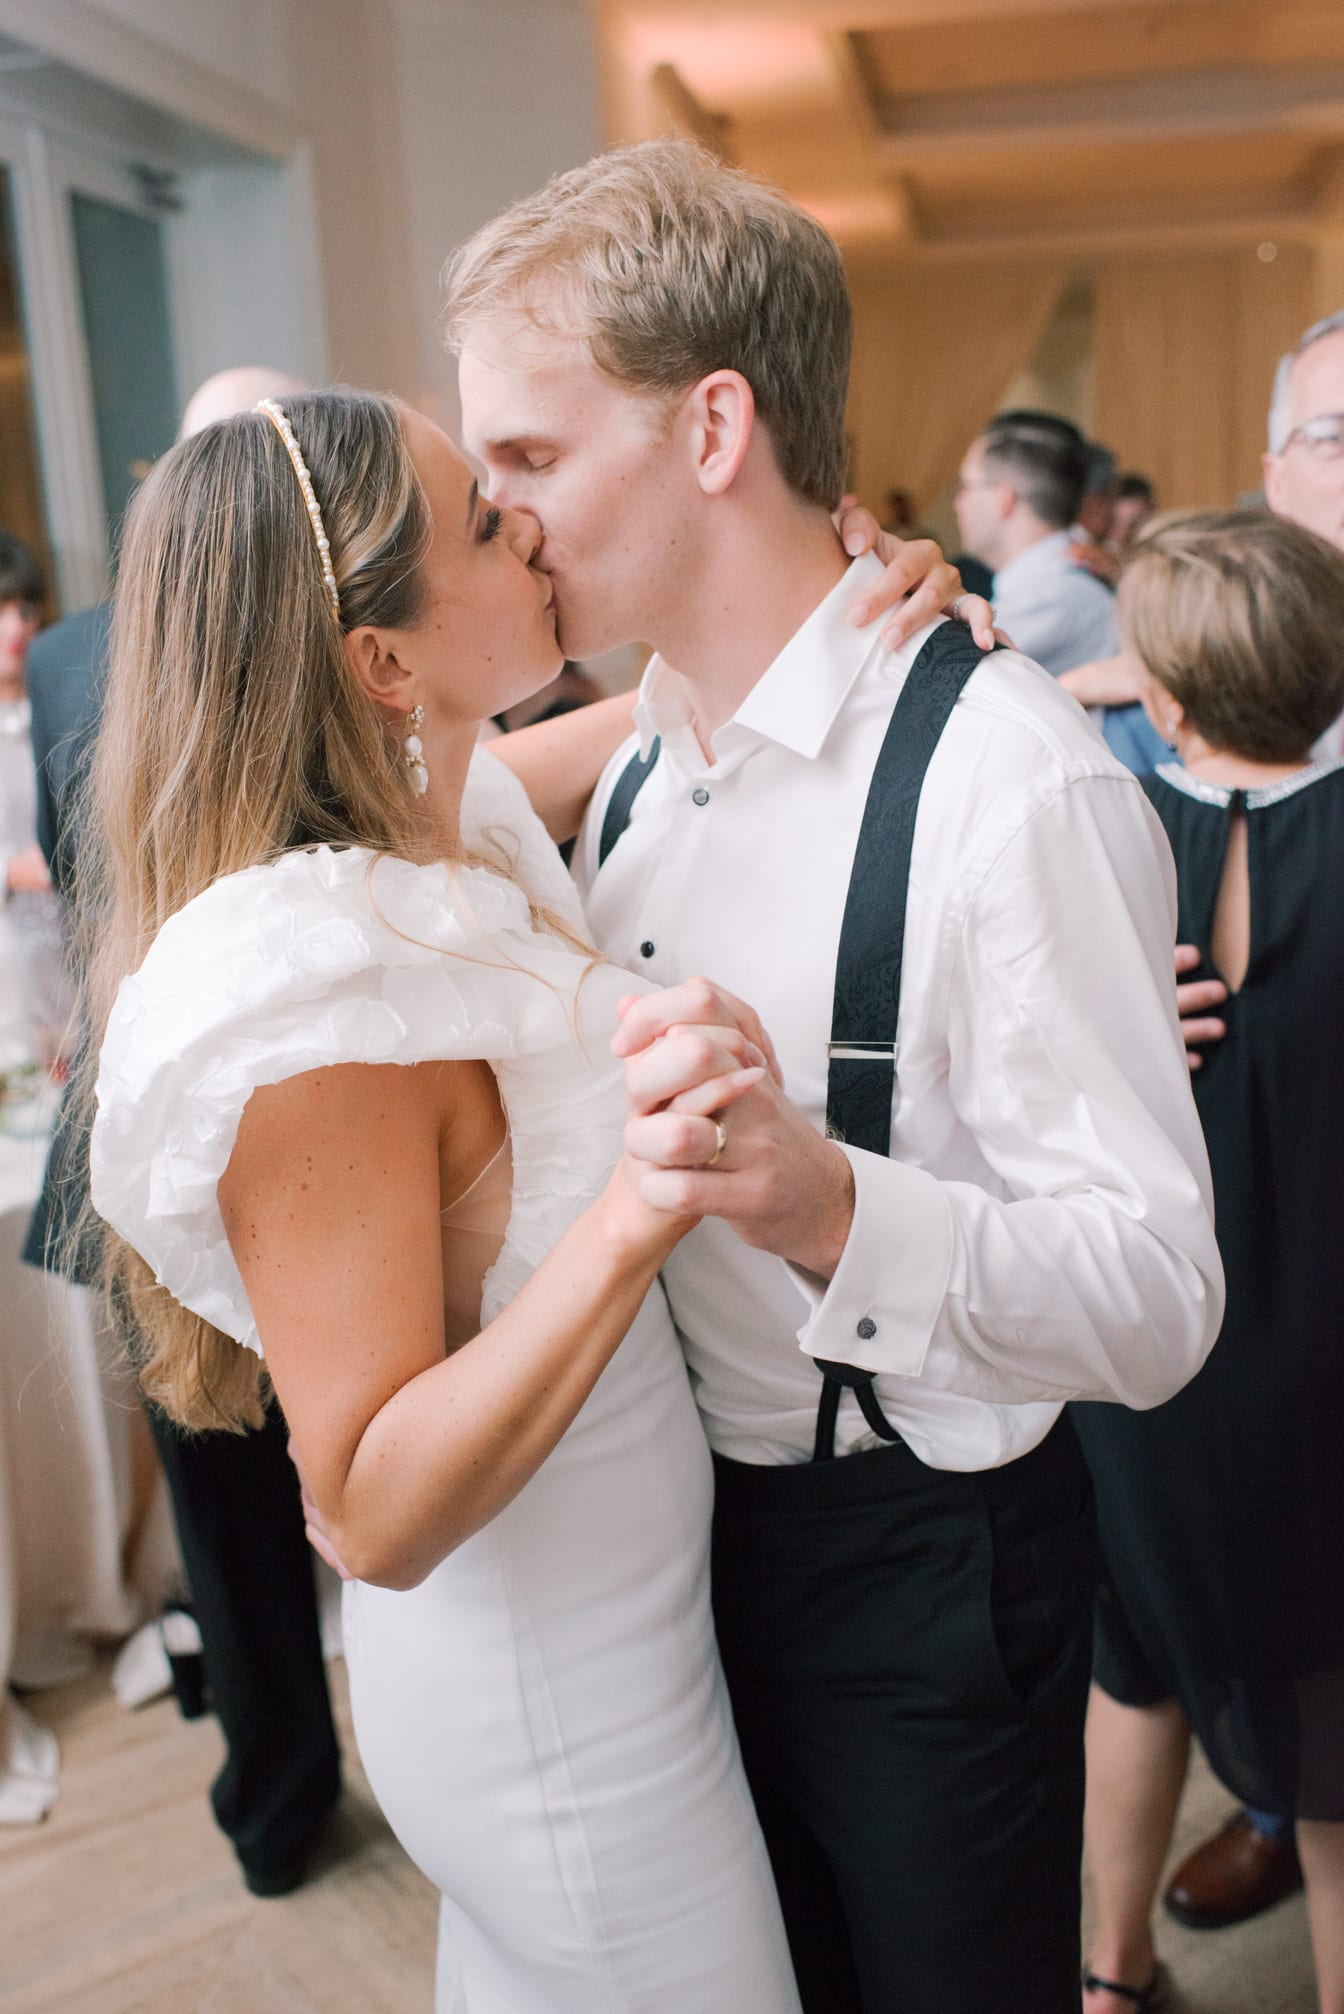 Bride and groom kissing each other during wedding reception while dancing